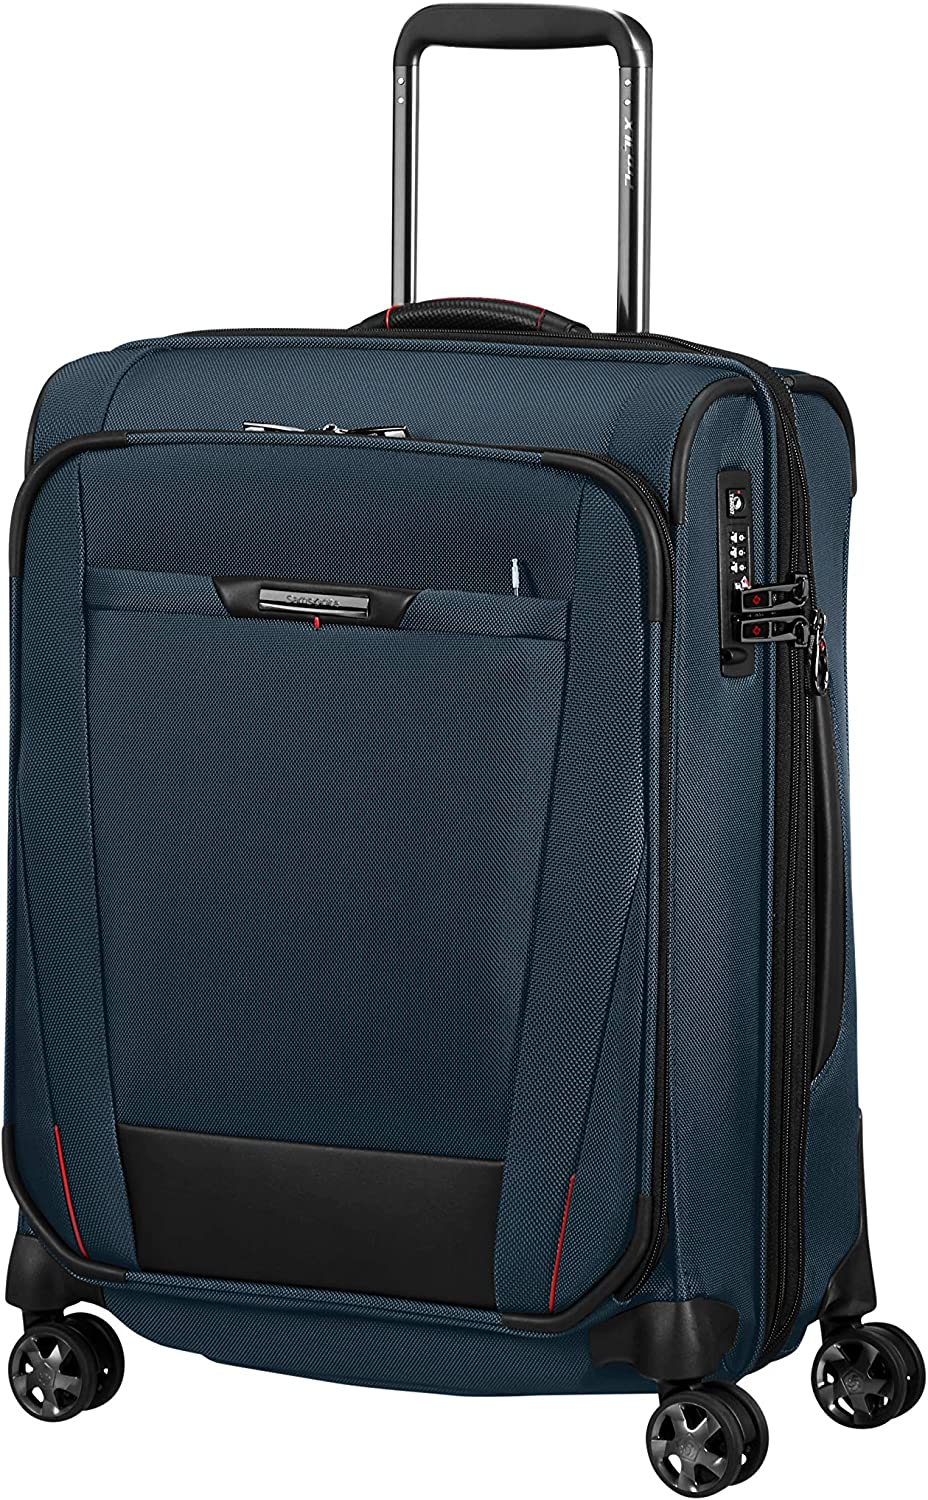 SAMSONITE Pro-DLX - Small Expandable Spinner Equipaje de Mano 55 Centimeters 51.5 Azul (Oxford Blue)